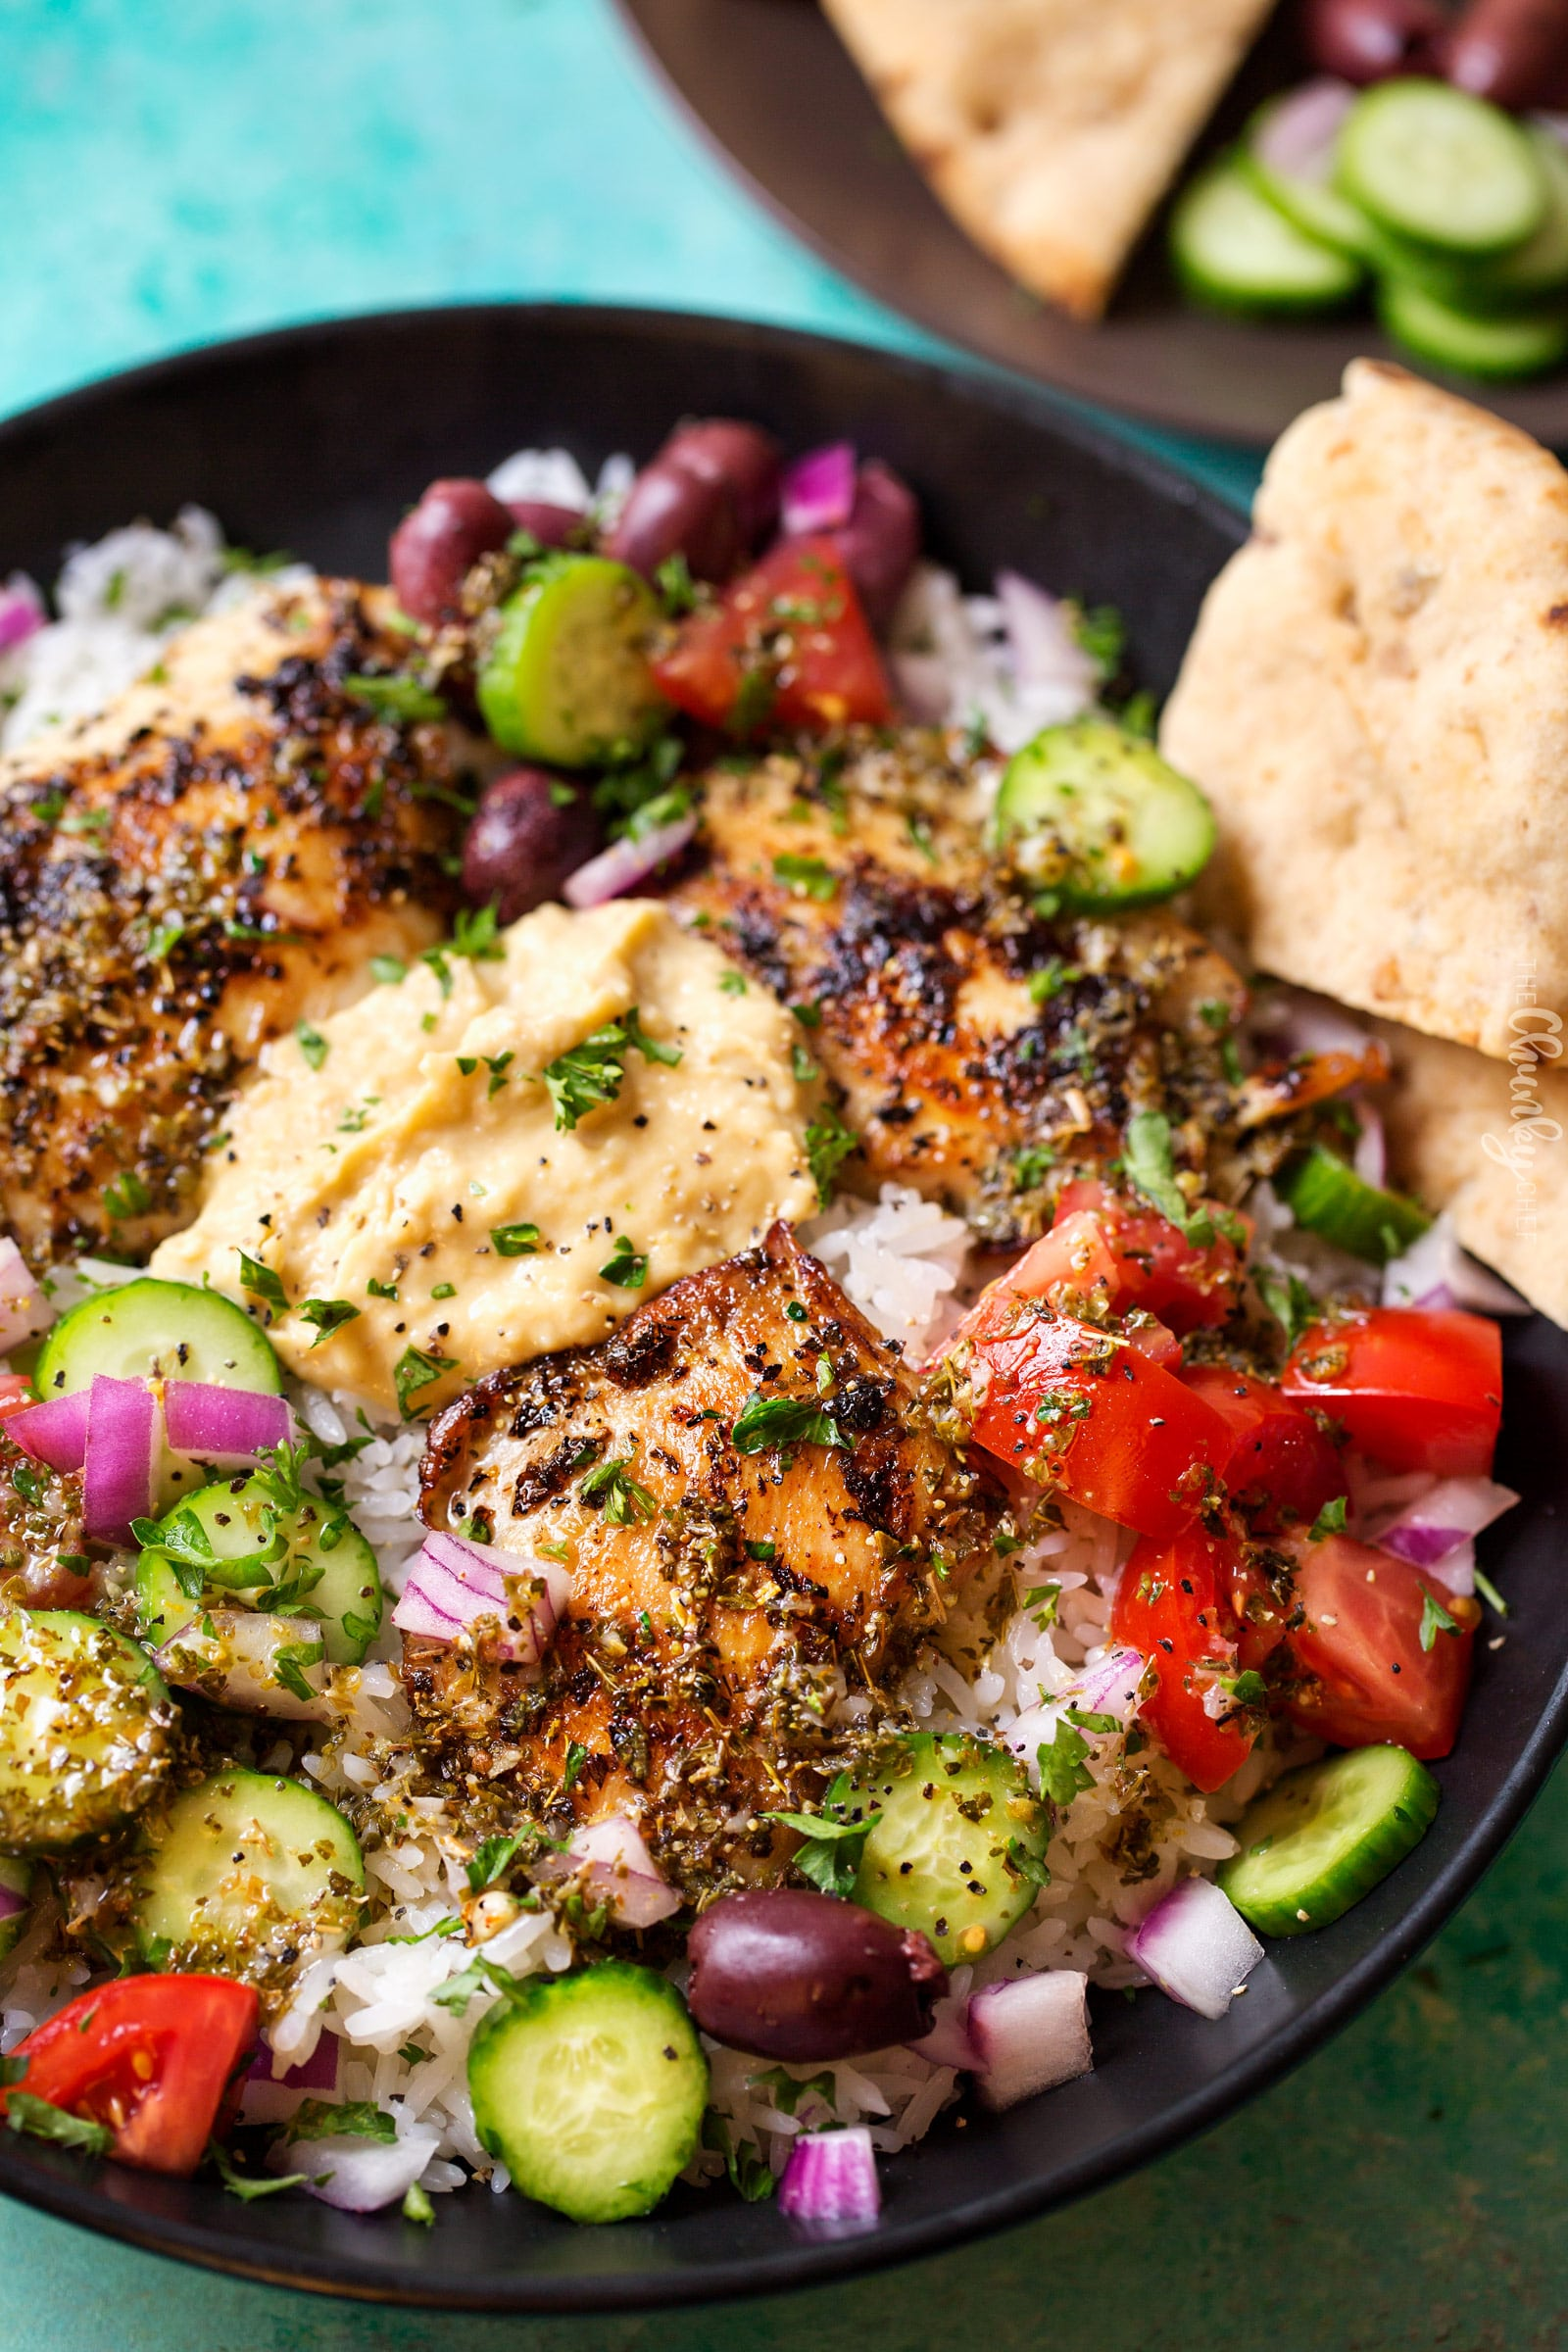 Hearty Greek Chicken and Rice Bowl | Ready in just 20 minutes or less, this rice bowl is packed with great Greek and Mediterranean flavors!  It's also perfect for meal prep or a back to school lunch box idea! | http://thechunkychef.com